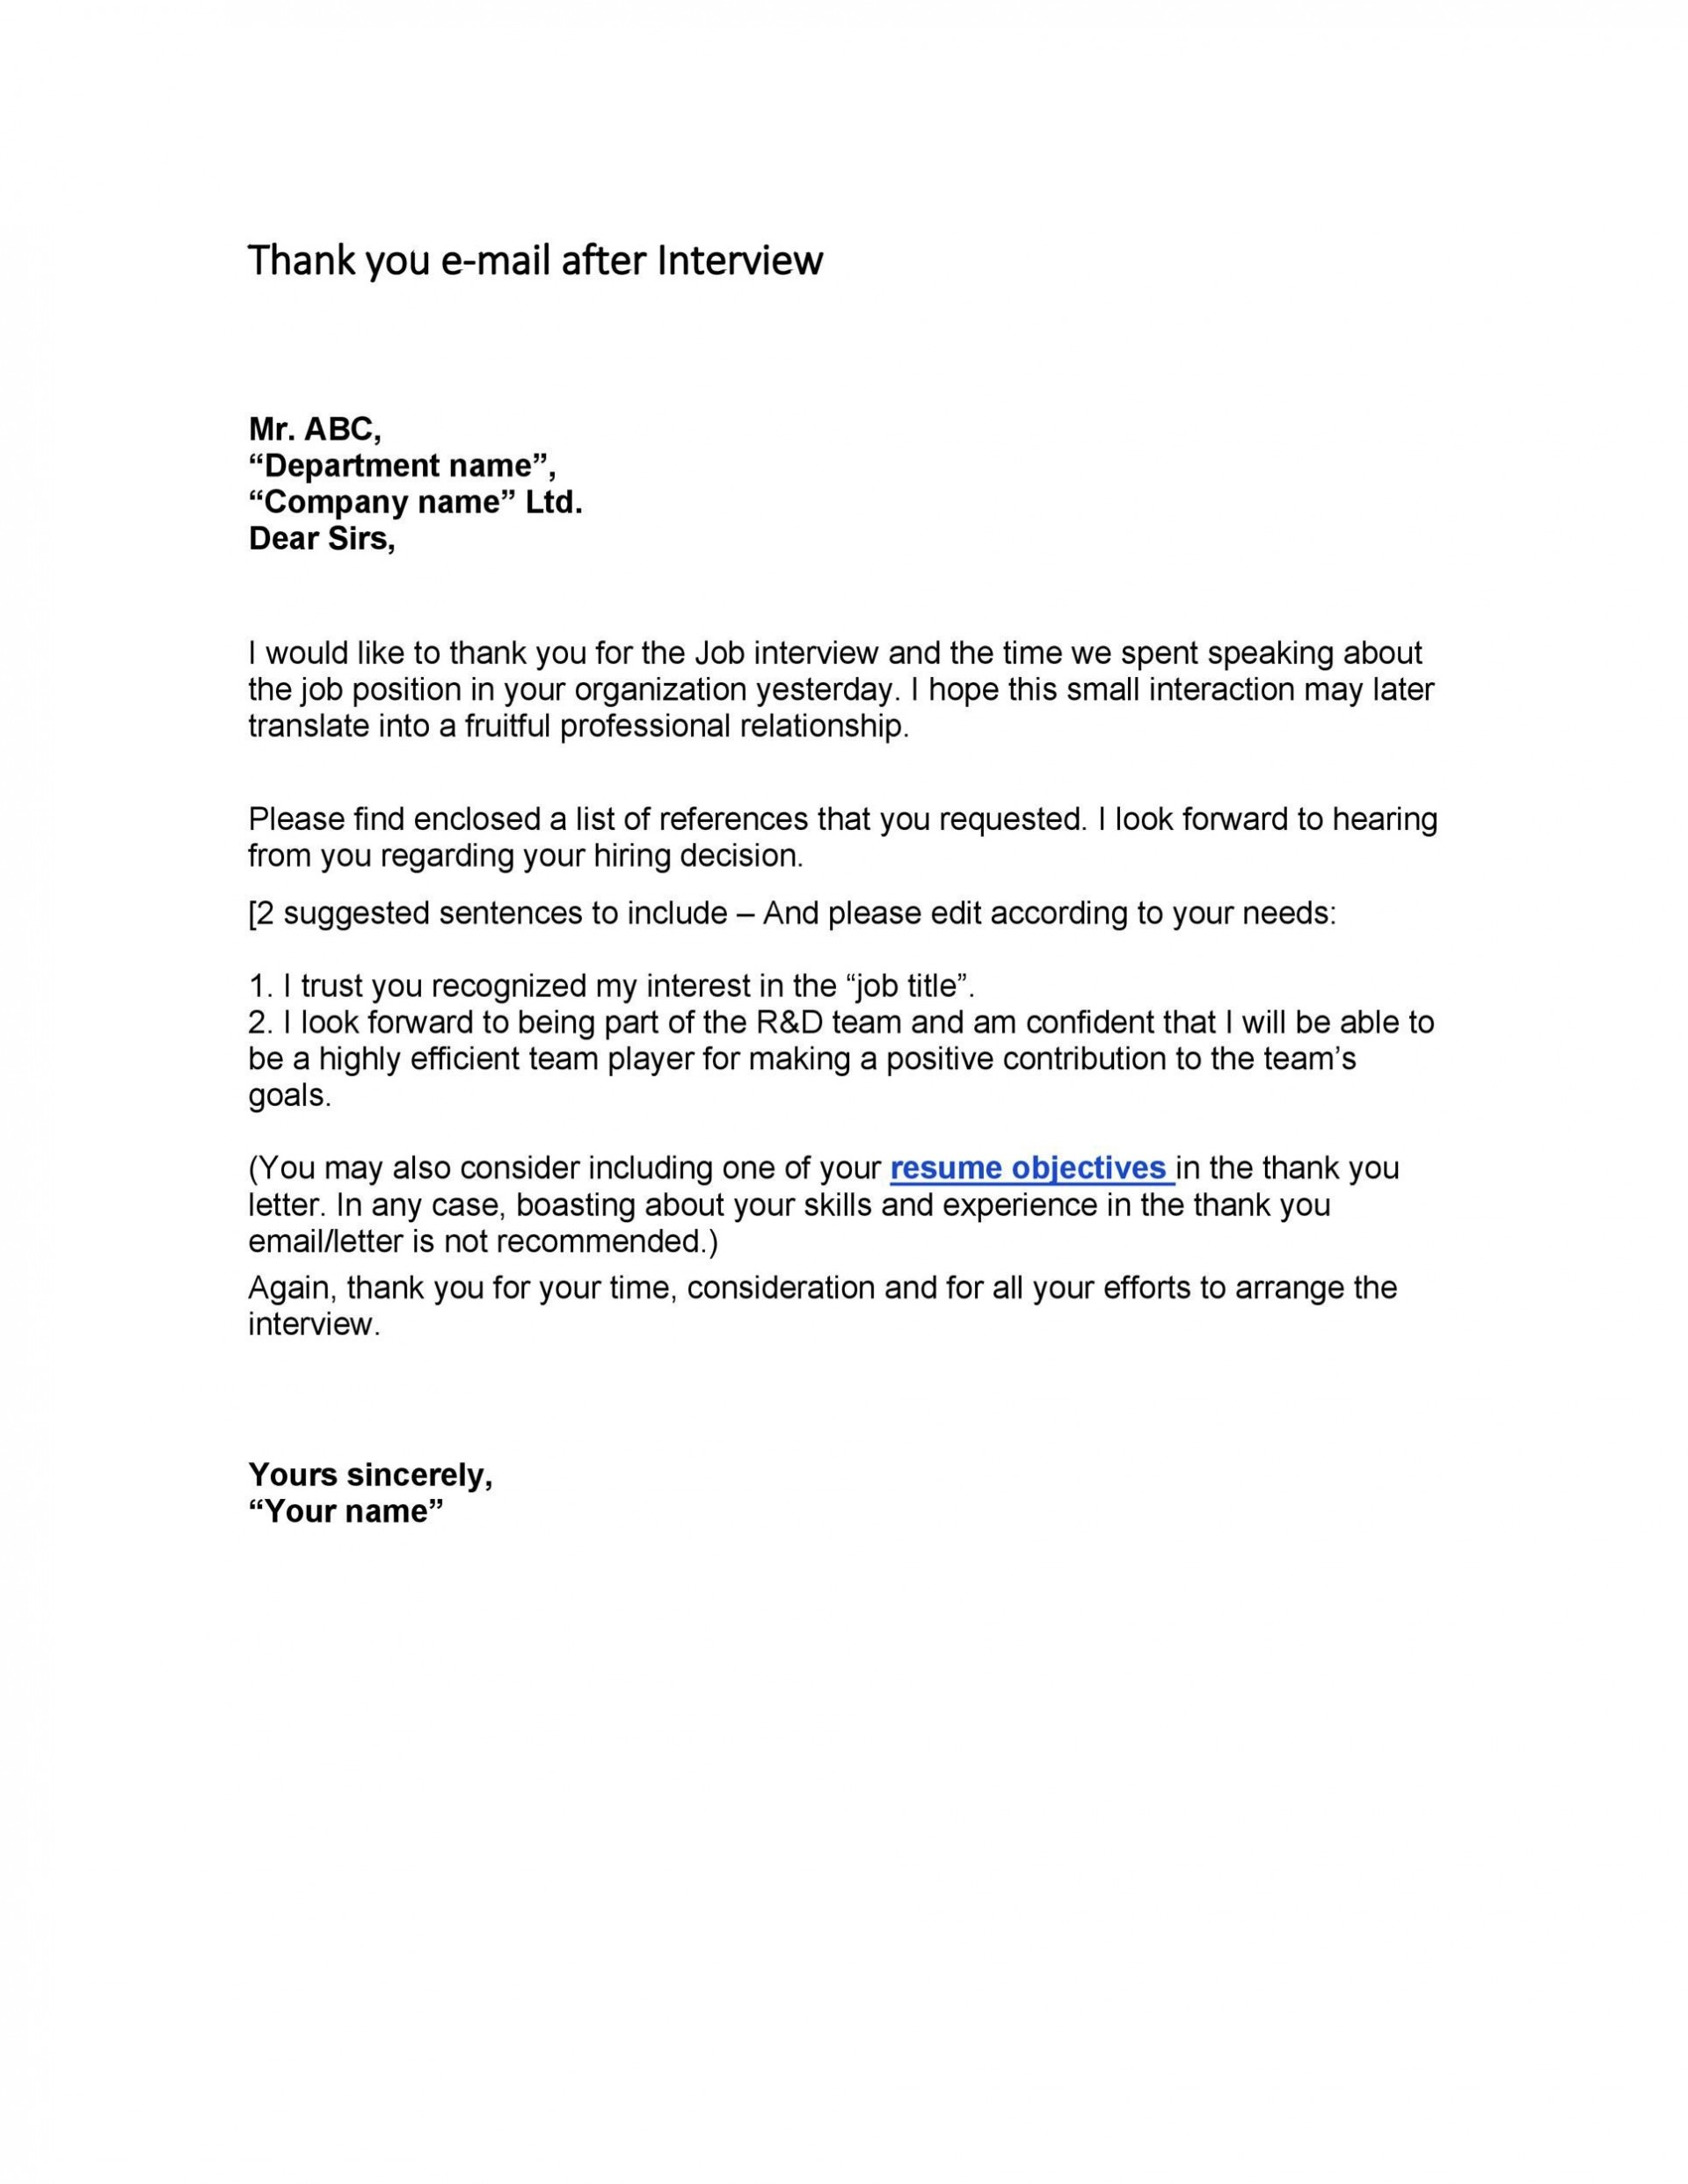 007 Breathtaking Follow Up Email Sample After Interview Idea  Polite When You Haven't Heard Back1920